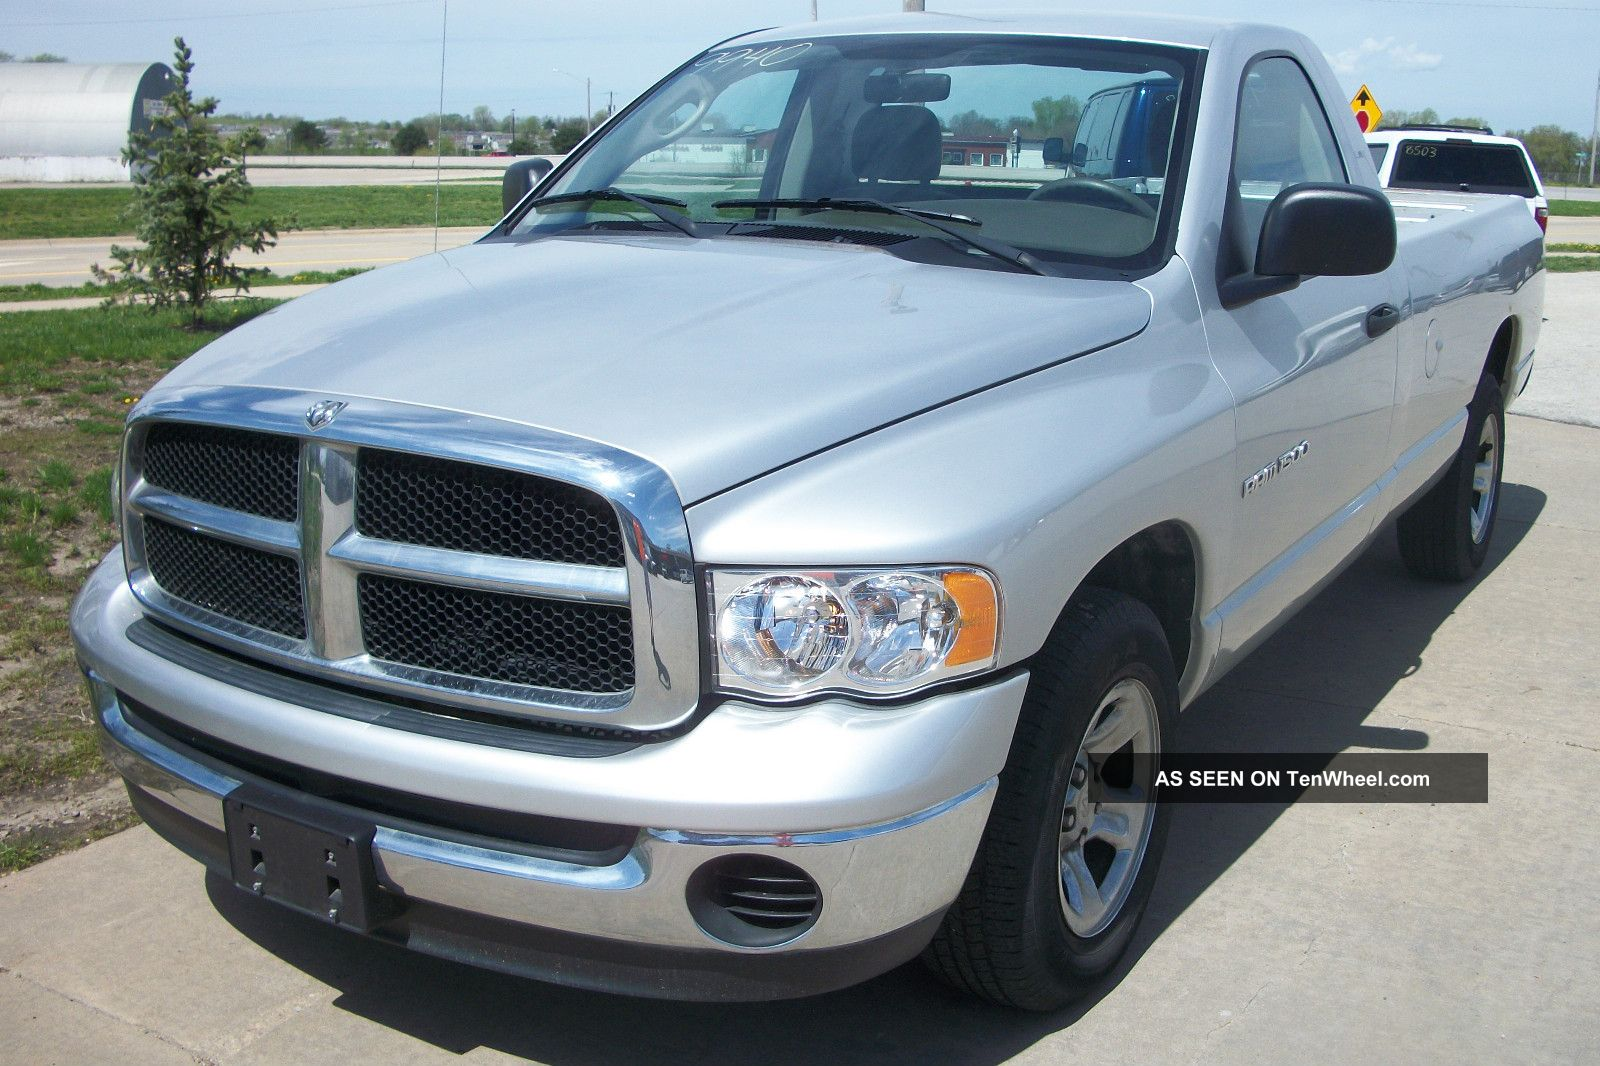 2004 dodge ram 1500 2wd slt reg cab silver tow package 9940. Black Bedroom Furniture Sets. Home Design Ideas